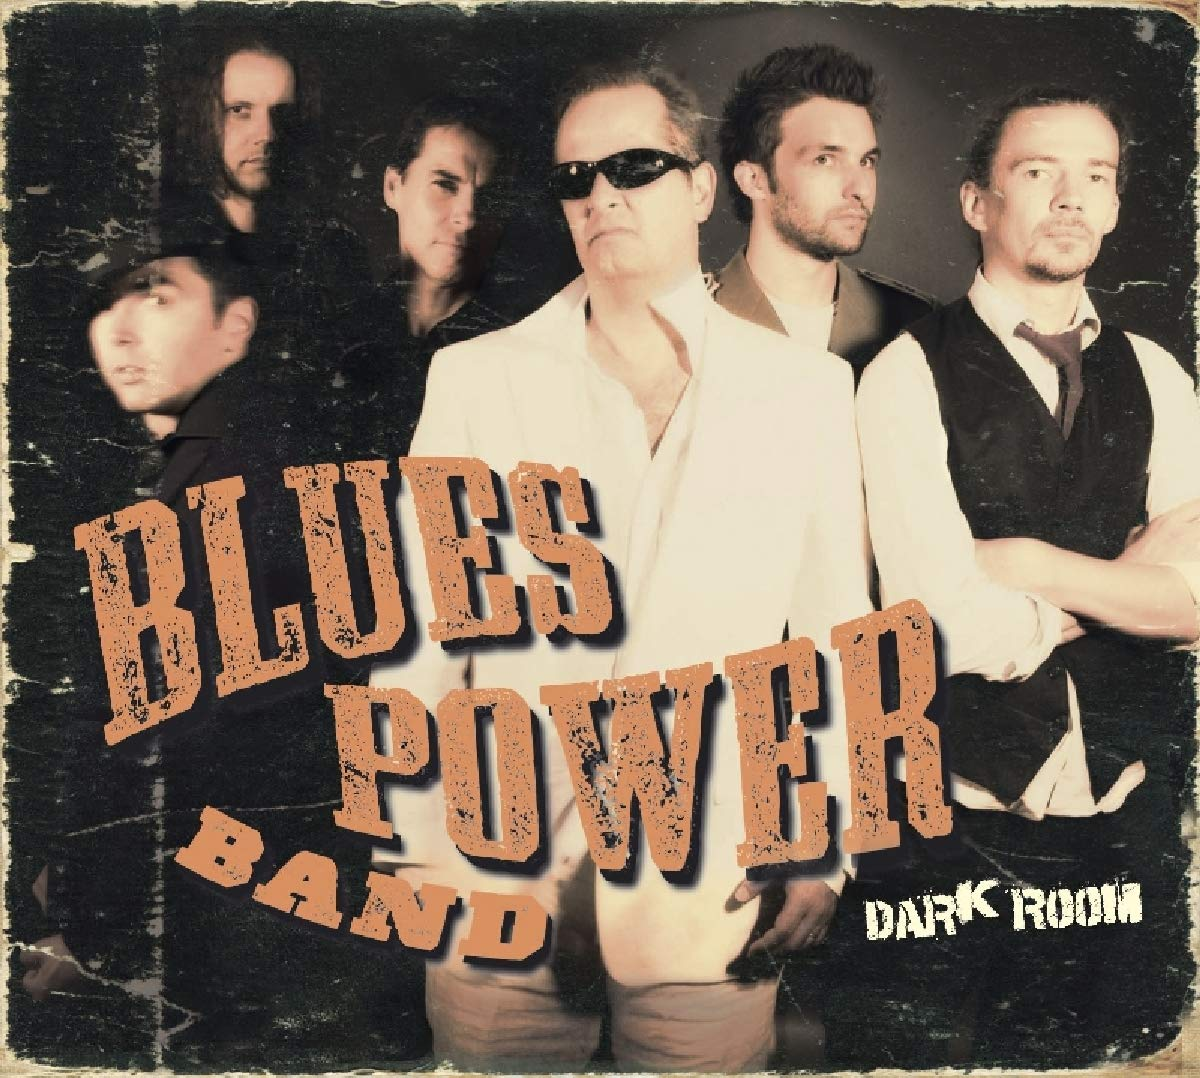 Dark Room: Blues Power Band, Blues Power Band: Amazon.fr: Musique